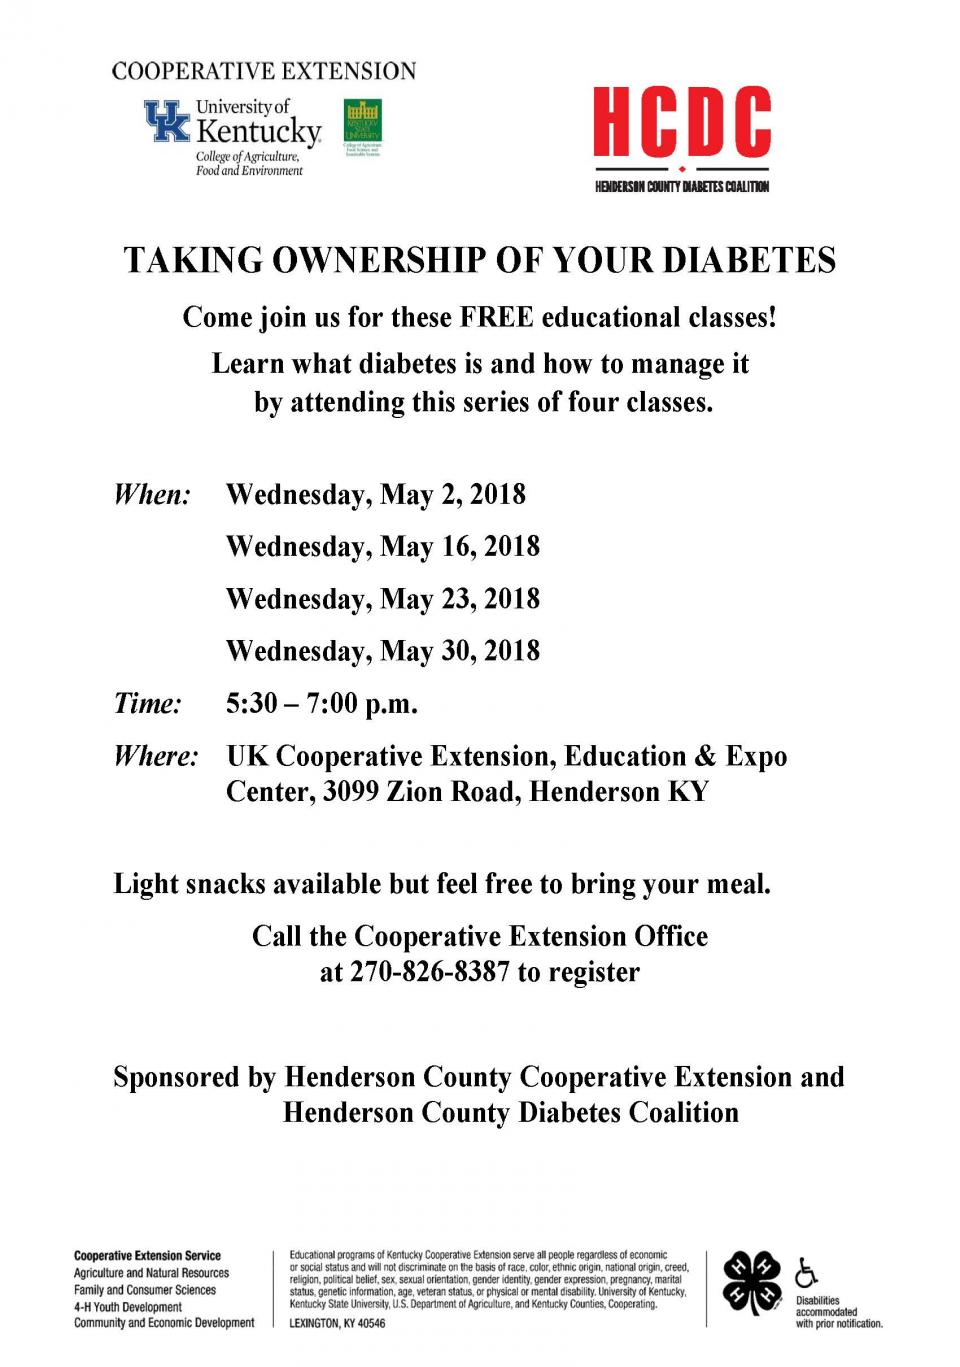 Taking Ownership of Your Diabetes! May 2, 16, 23, 30 - Call 270-826-8387.